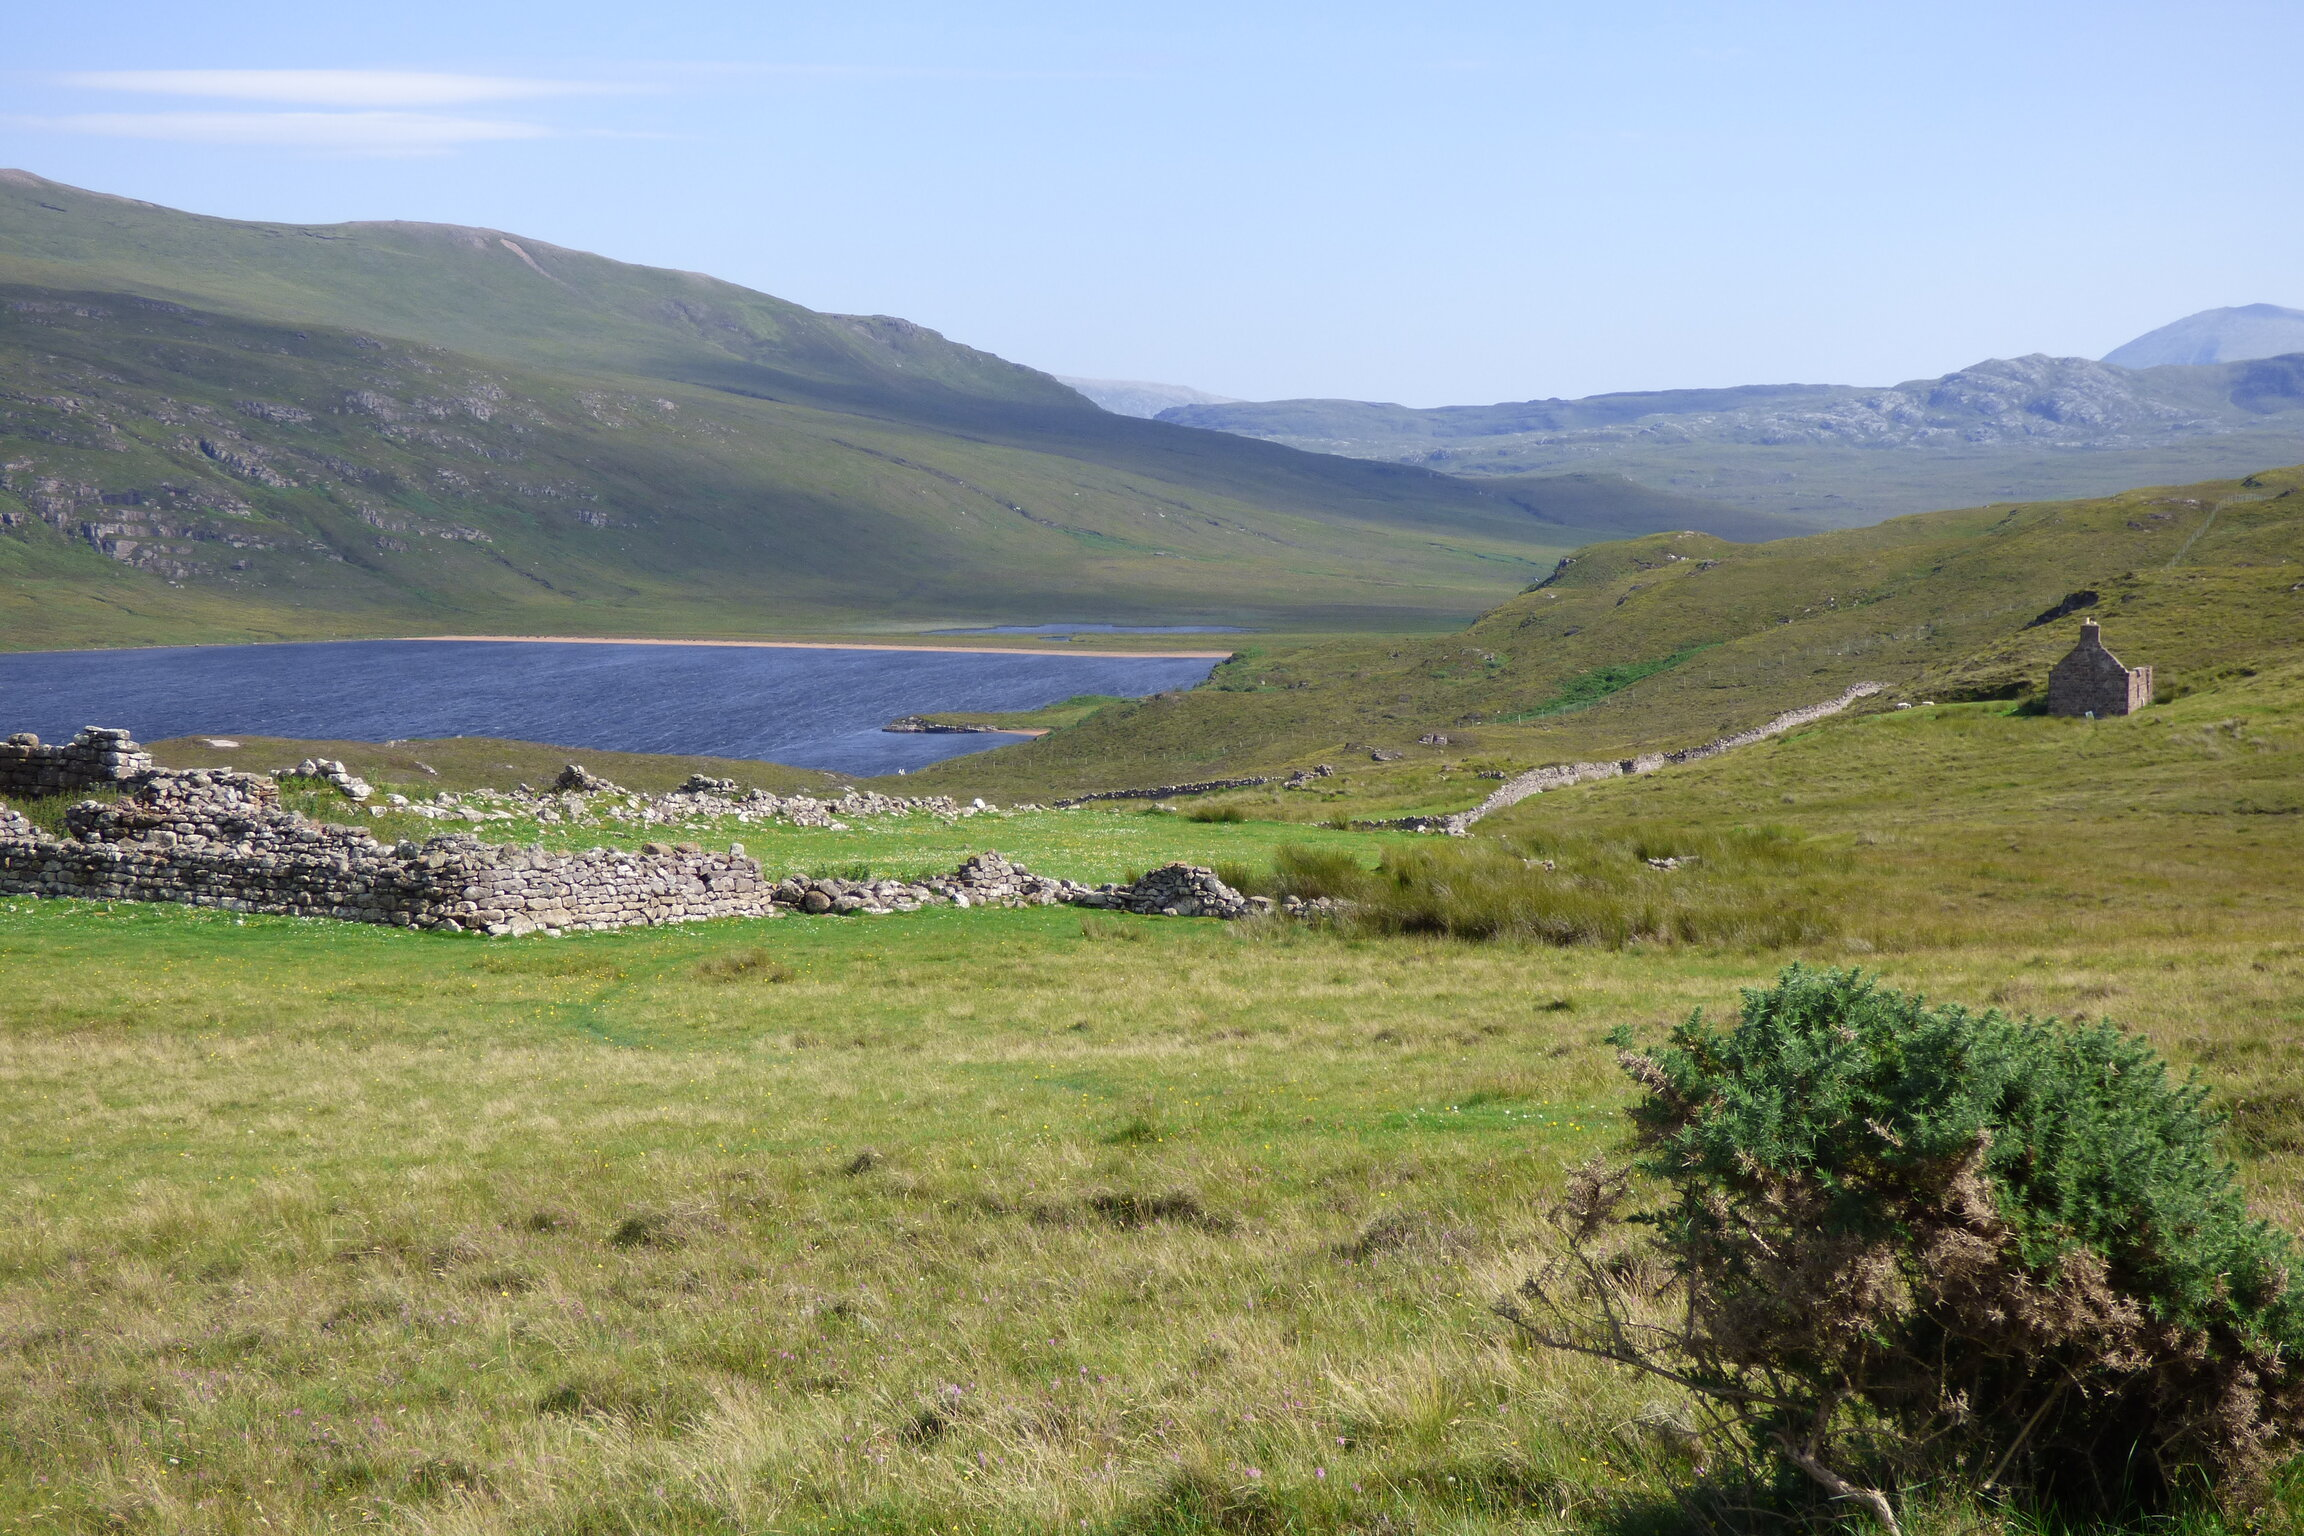 A loch in Scotland which is considered one of the haunted fishing destinations is nestled between the hills and plains